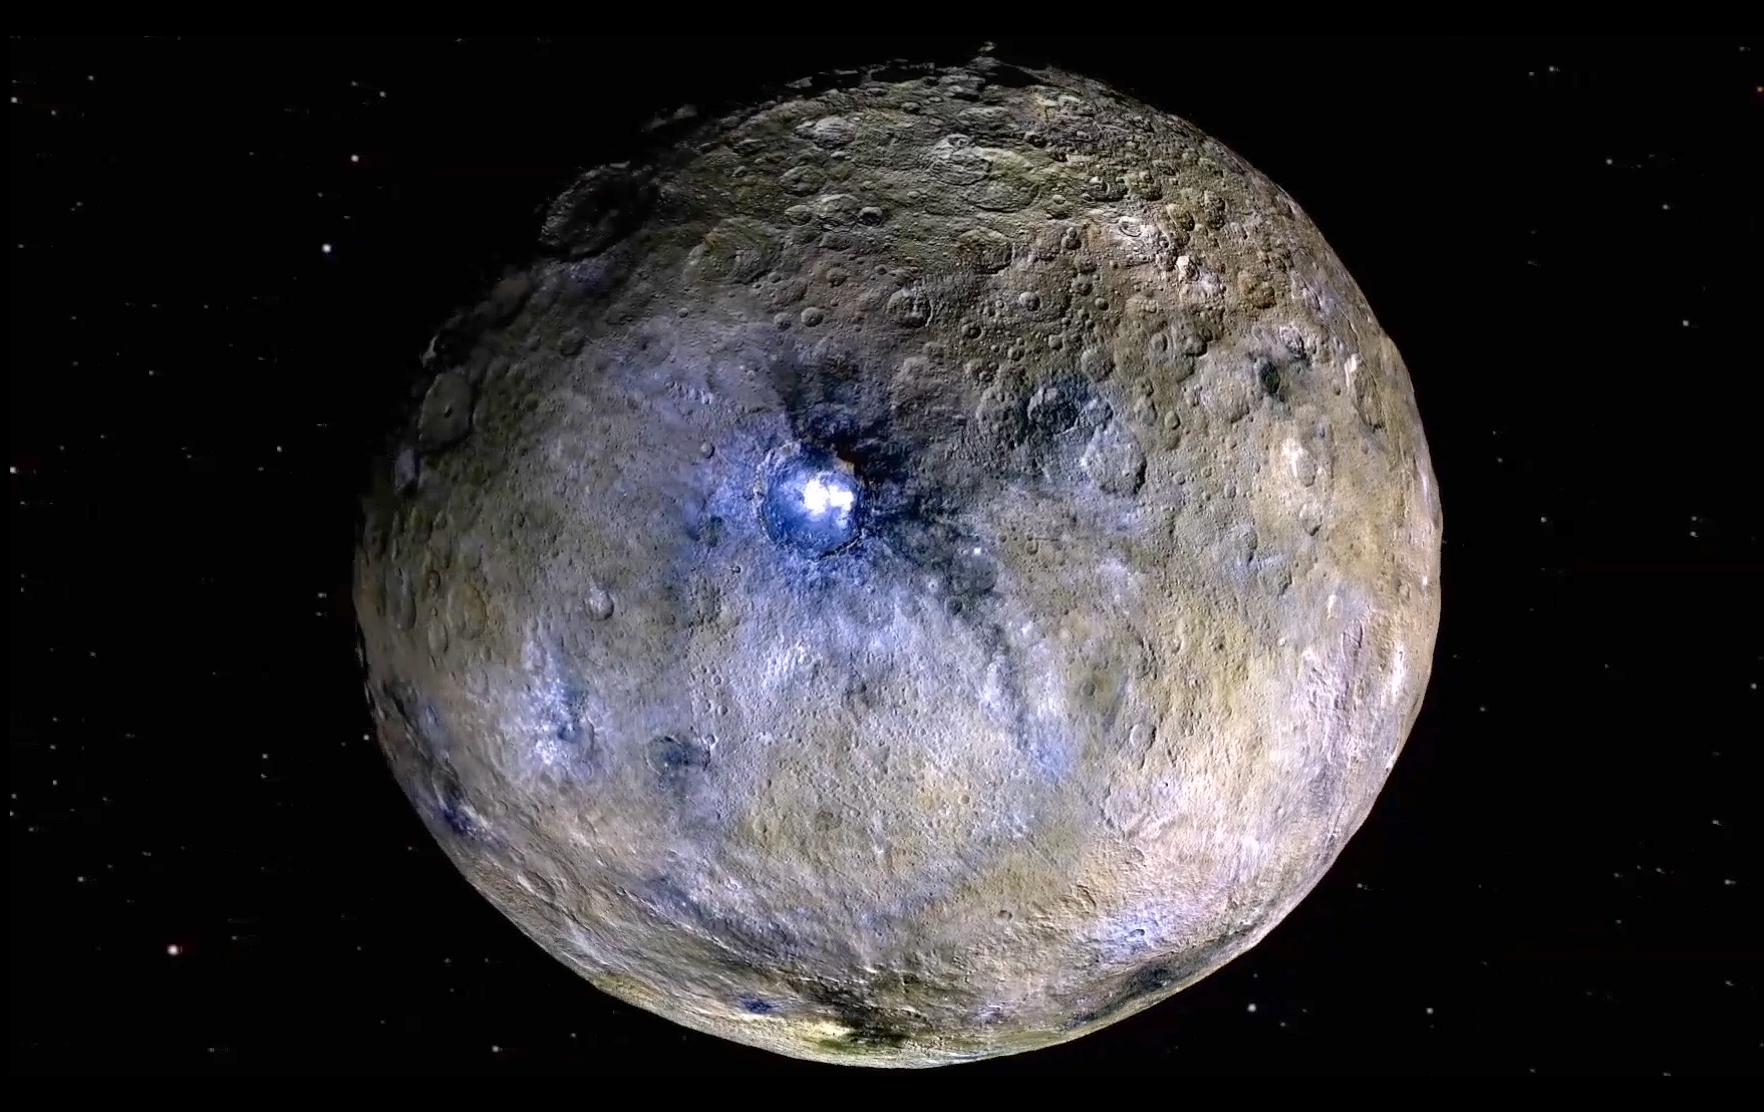 An image of the dwarf planet Ceres